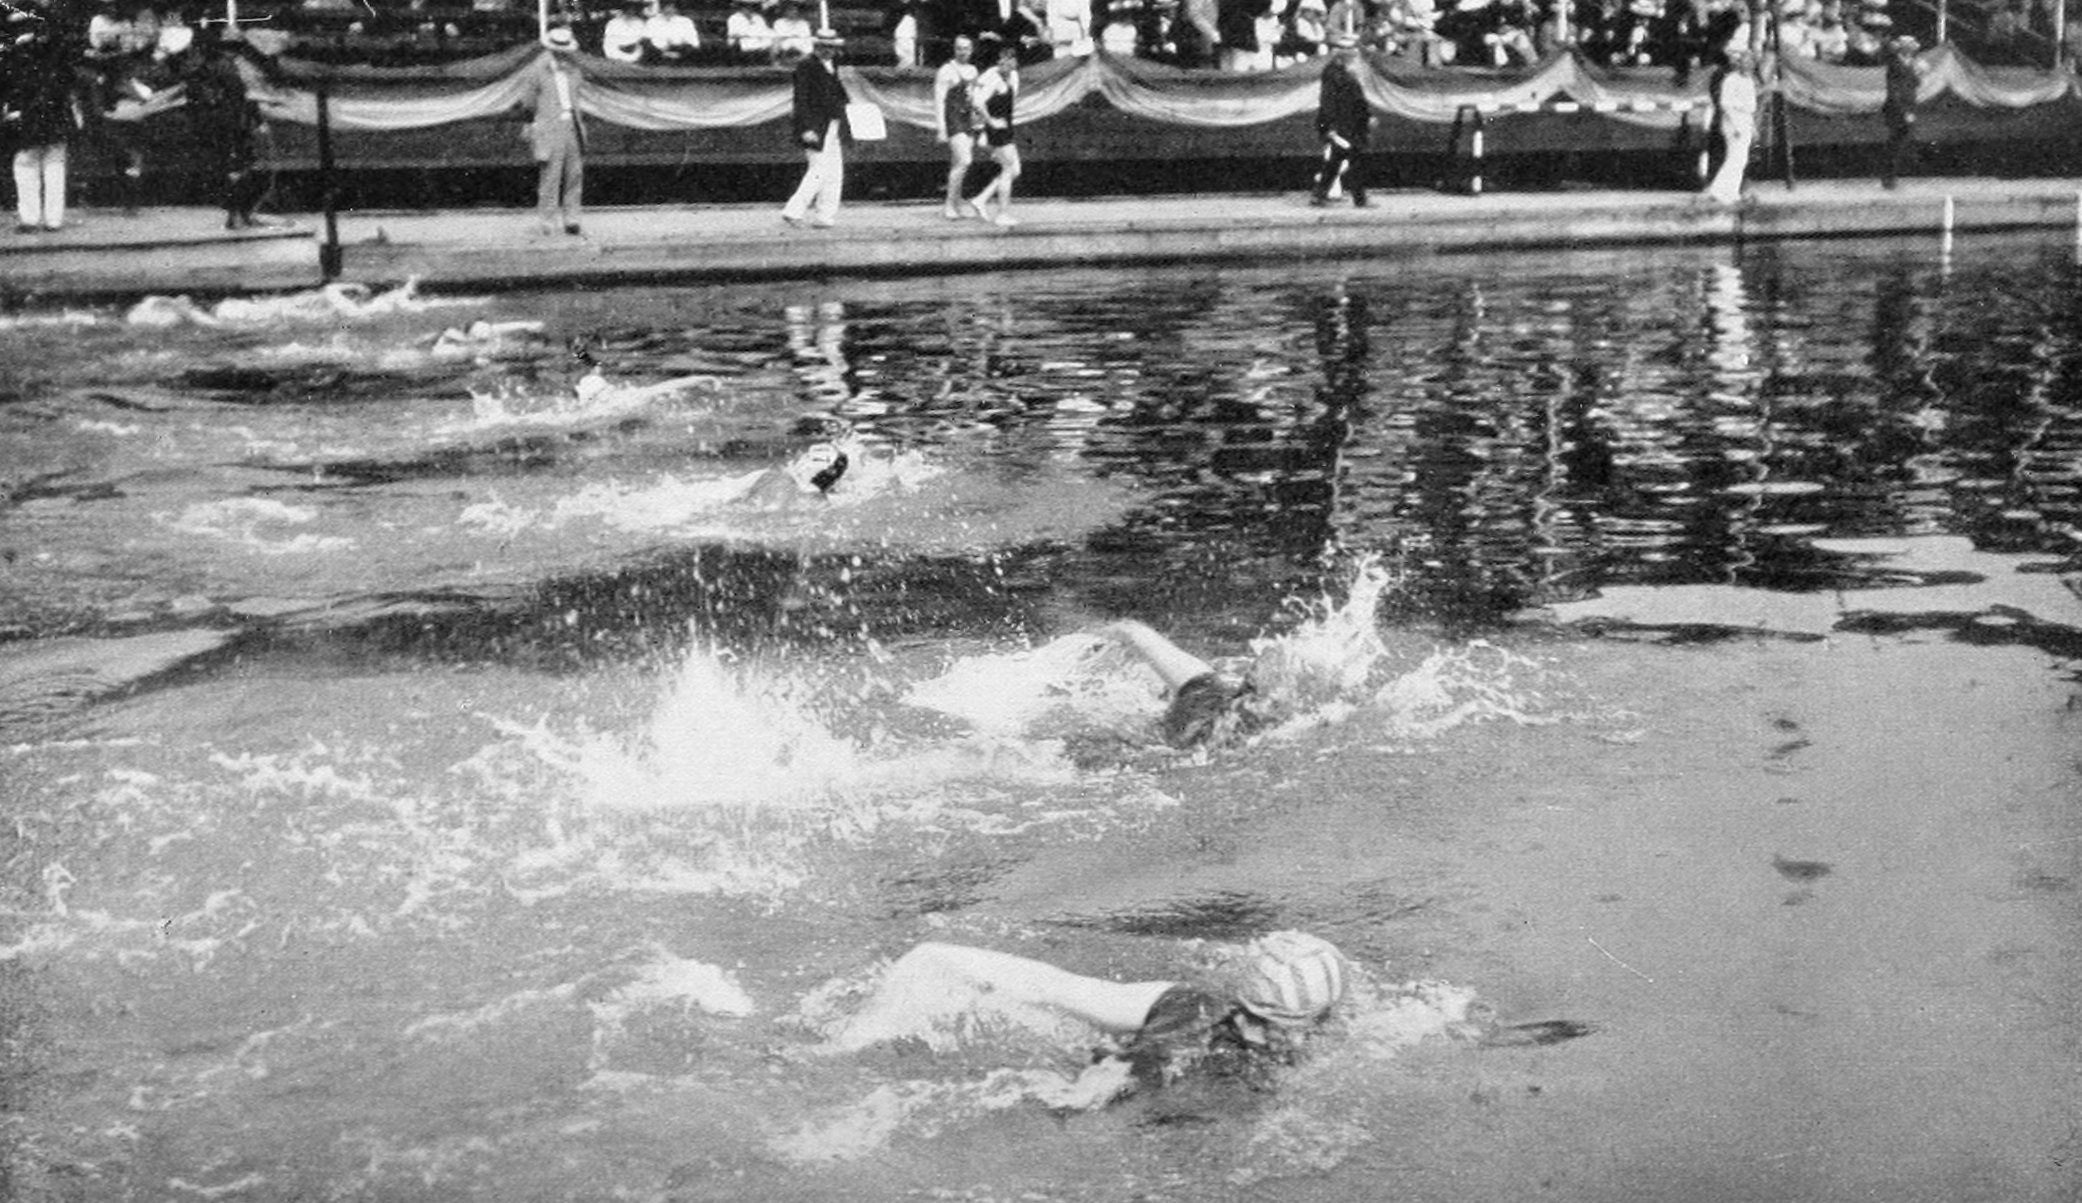 Women at the Olympics – Women In Swimming